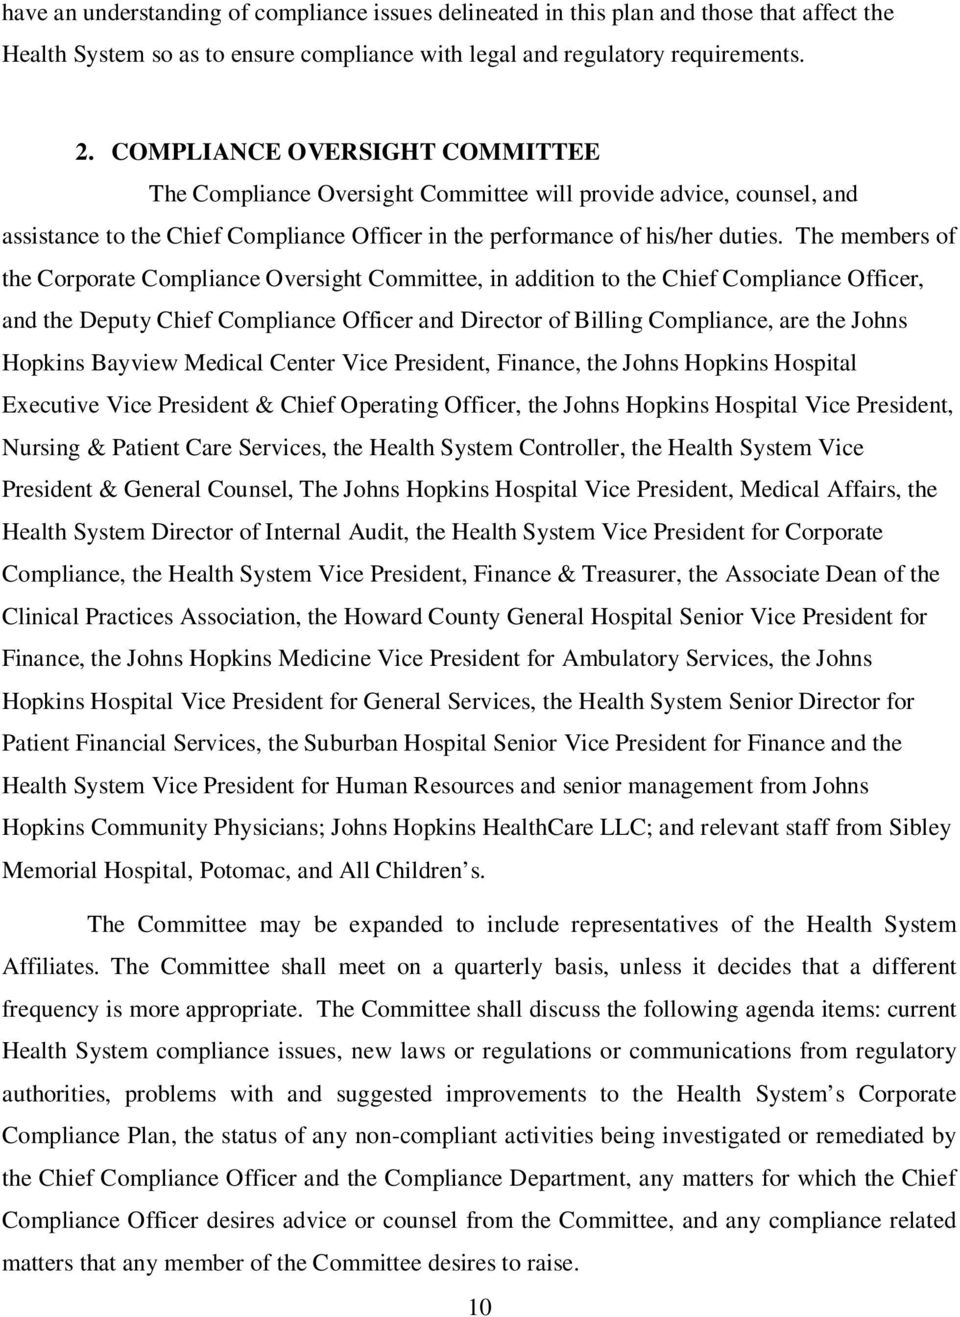 THE JOHNS HOPKINS HEALTH SYSTEM CORPORATION CORPORATE COMPLIANCE